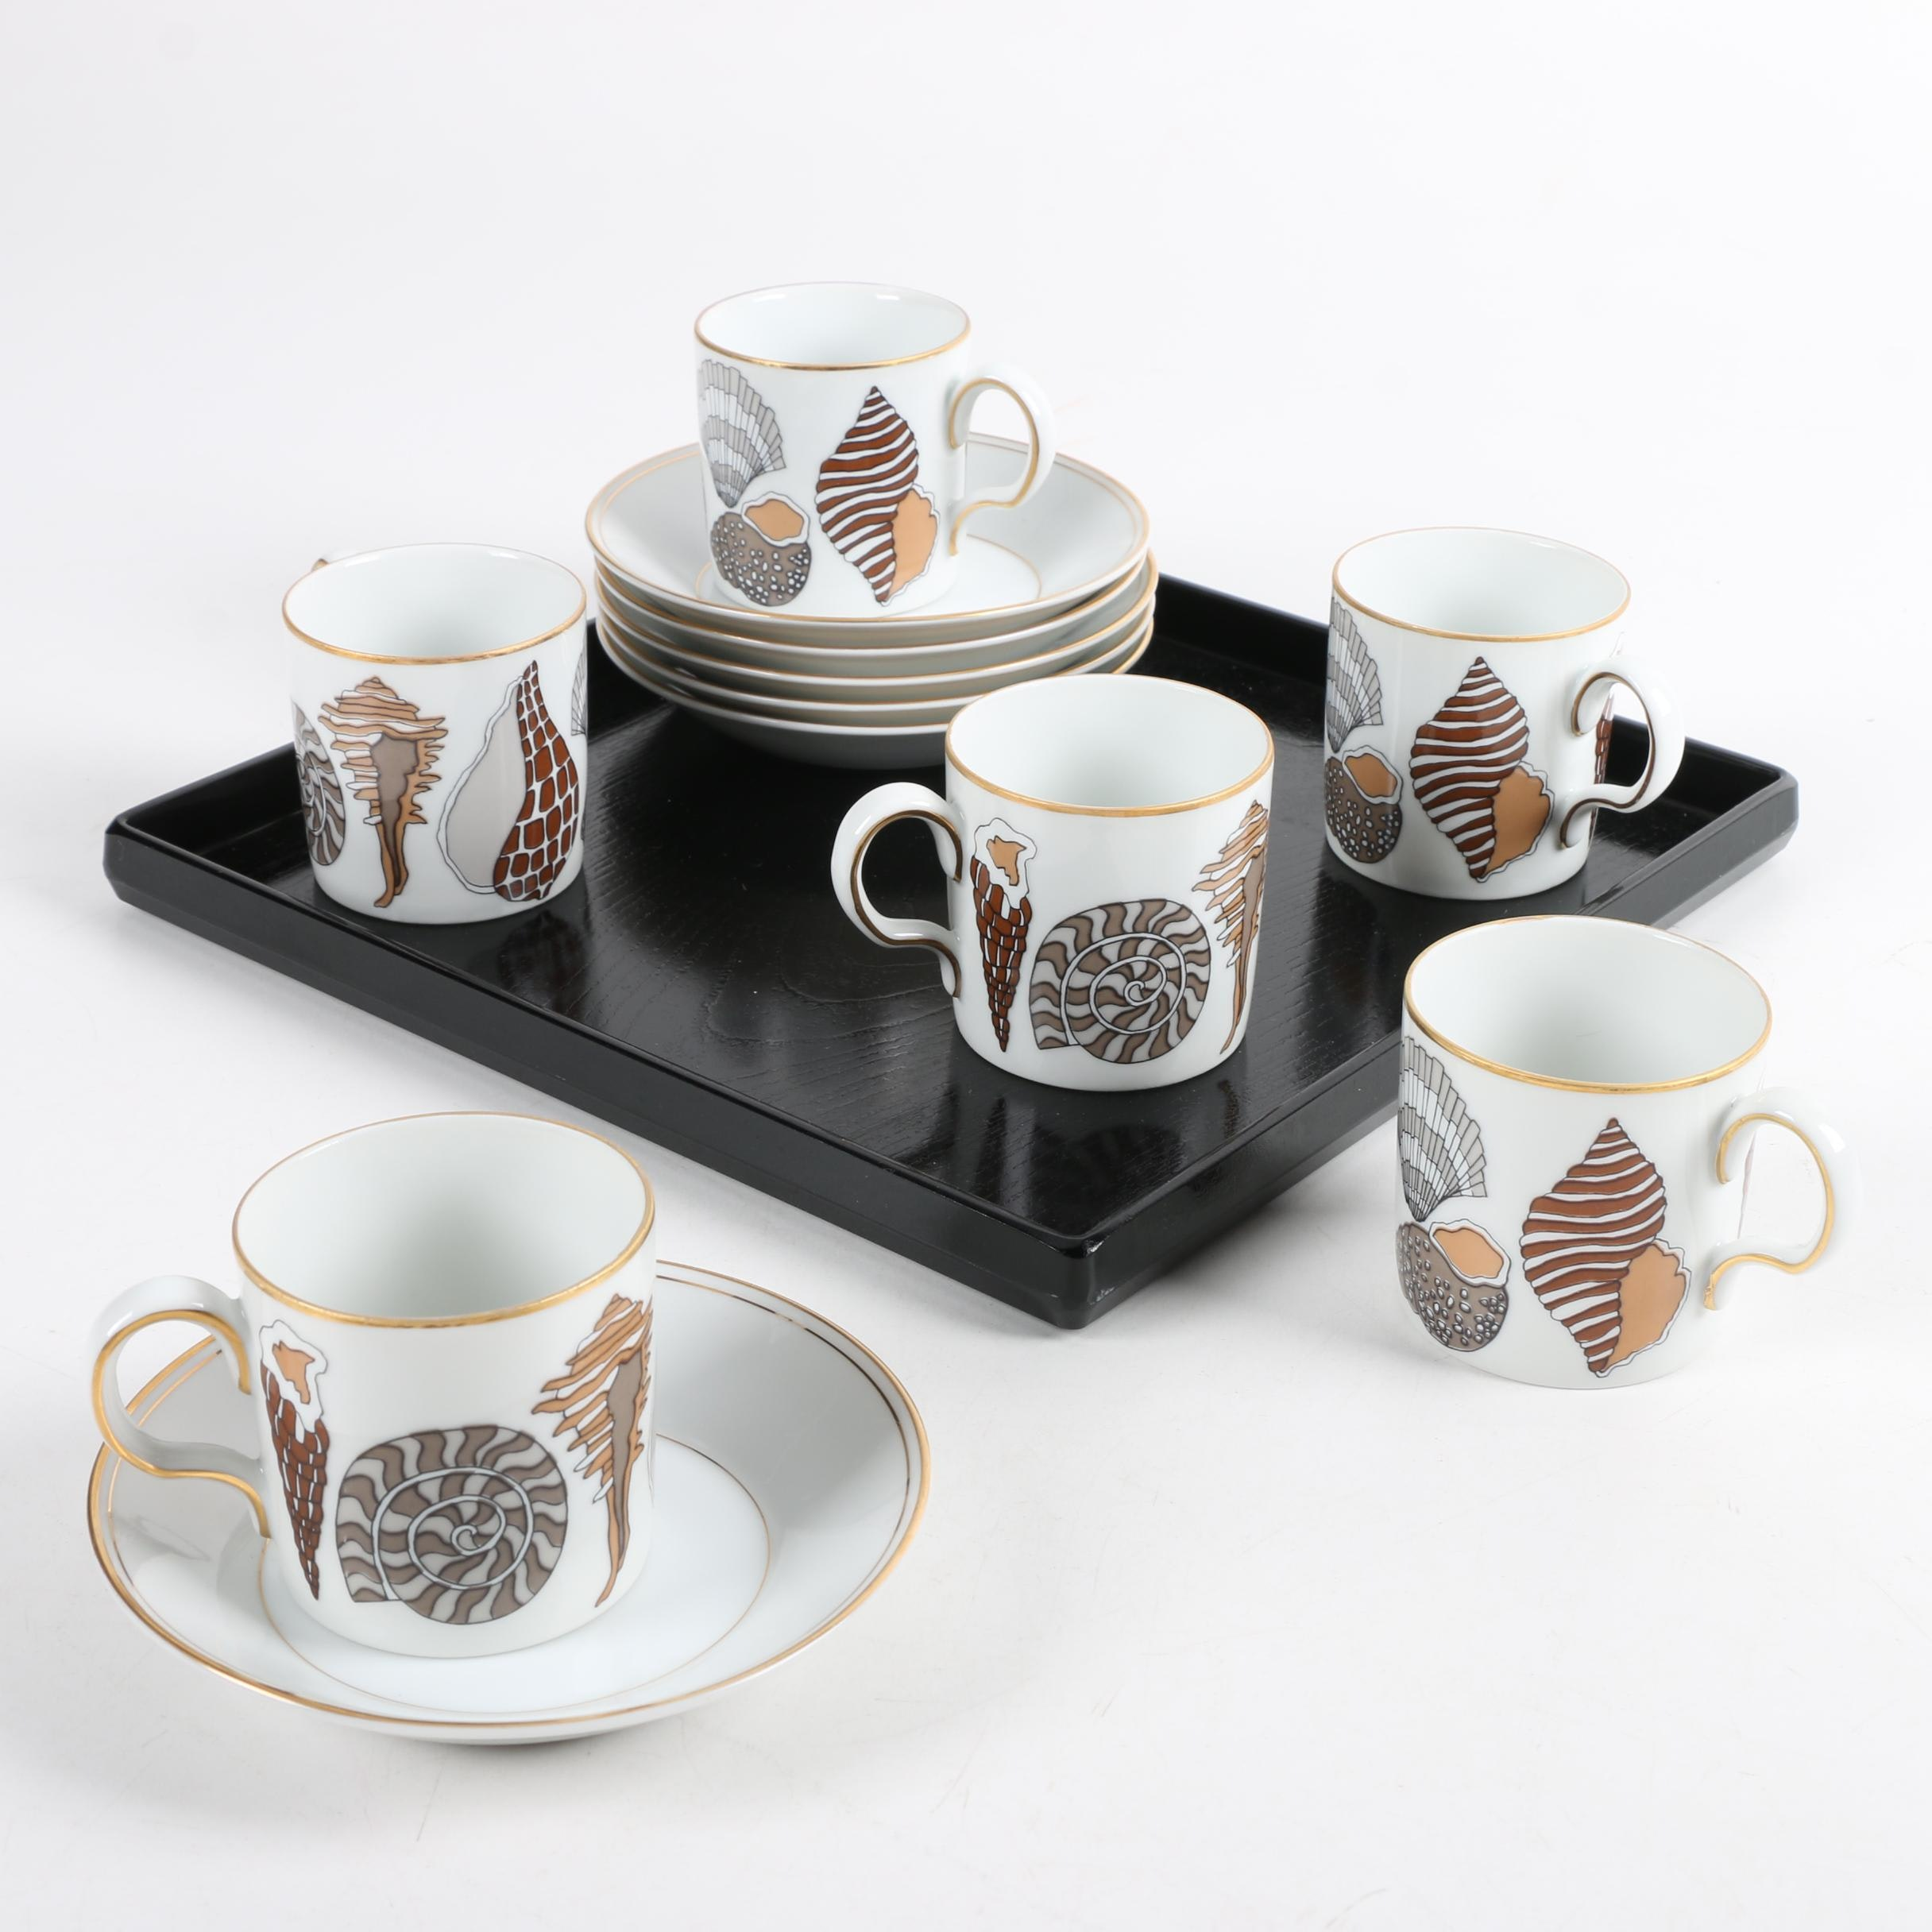 Fitz and Floyd for Neiman Marcus Seashell Porcelain Teacup Set